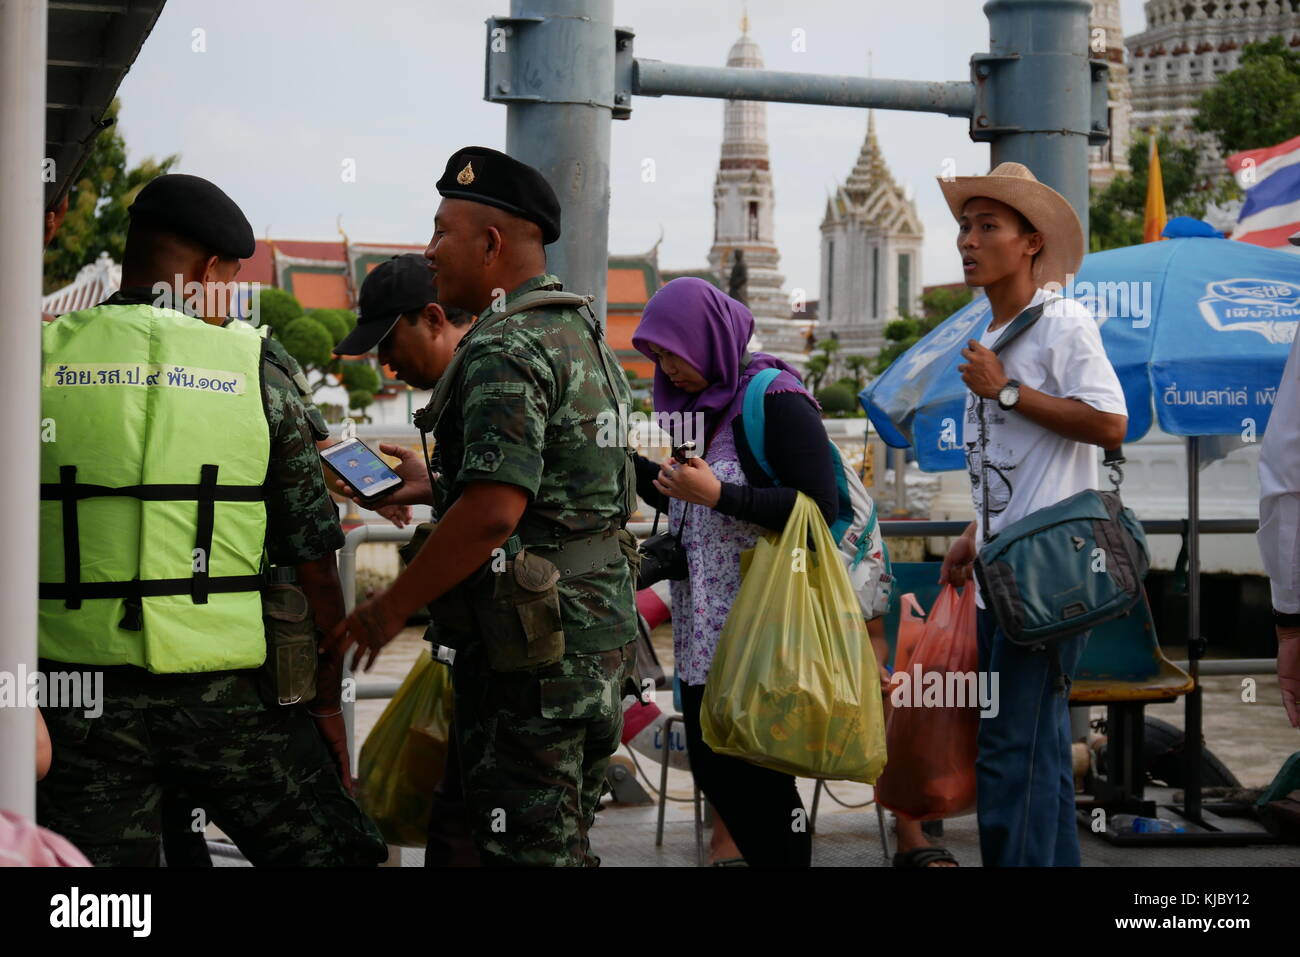 Thai people embark on a public boat from a pier along the Chao Praya, Bangkok, accompanied by soldiers. - Stock Image